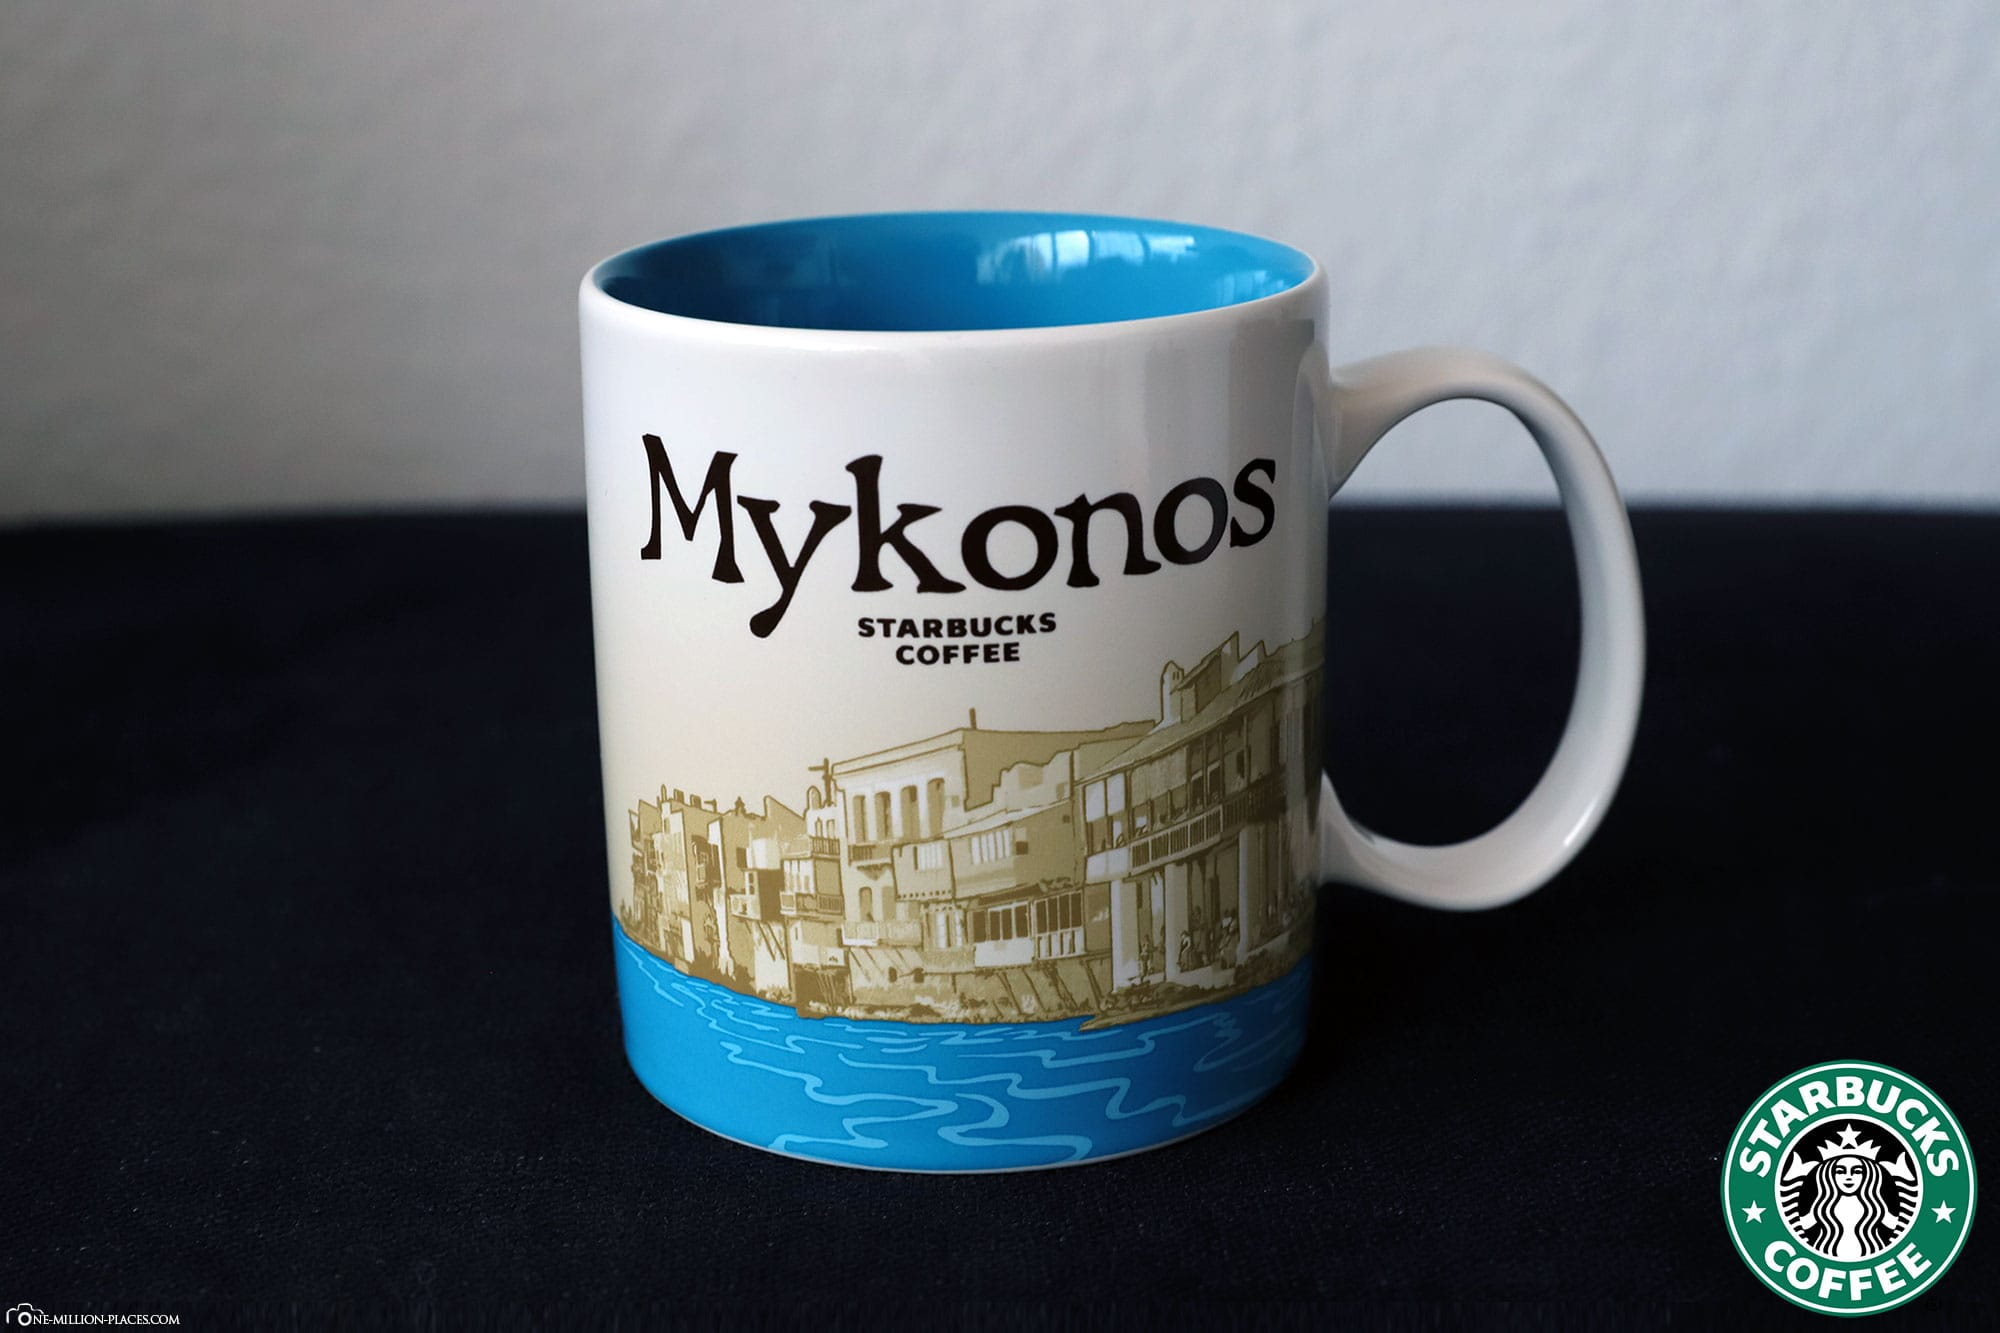 Mykonos, Starbucks Cup, Global Icon Series, City Mugs, Collection, Greece, Travelreport